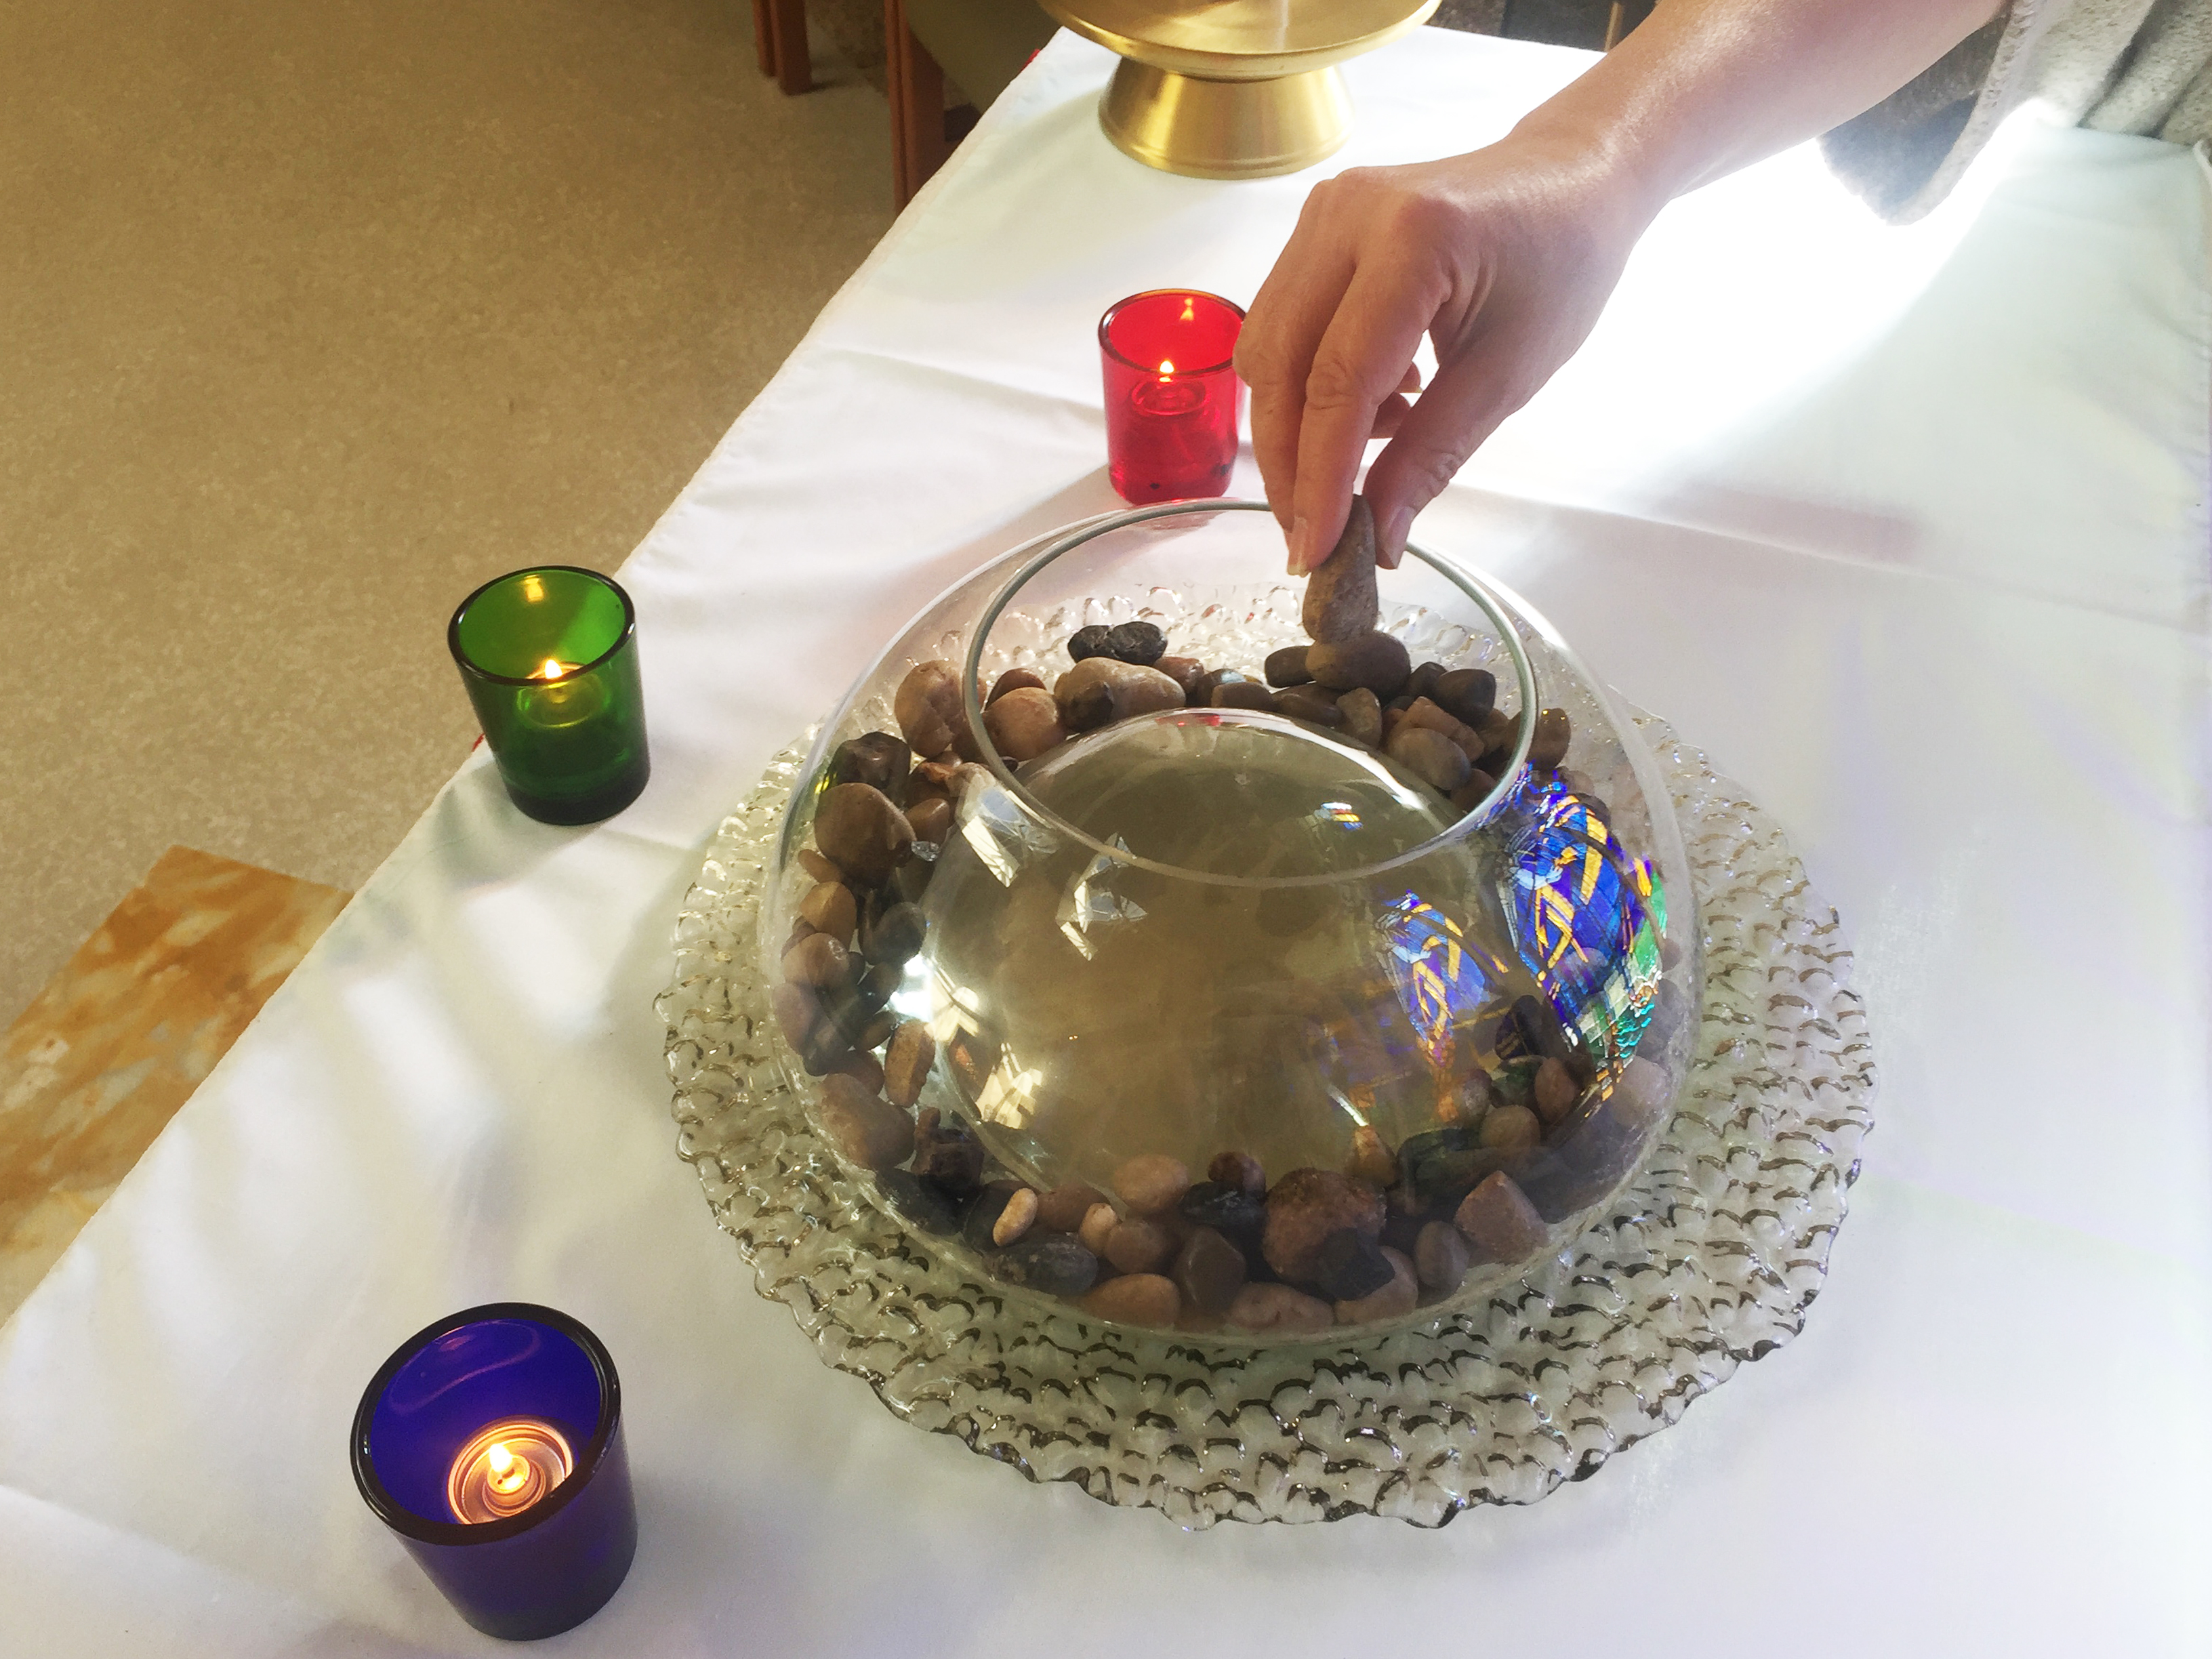 Placing a rock in a vessel of water symbolizes the ripple effect of someone's life. It's one way staff at St. Vincent's: Langara may choose to honour the deceased.